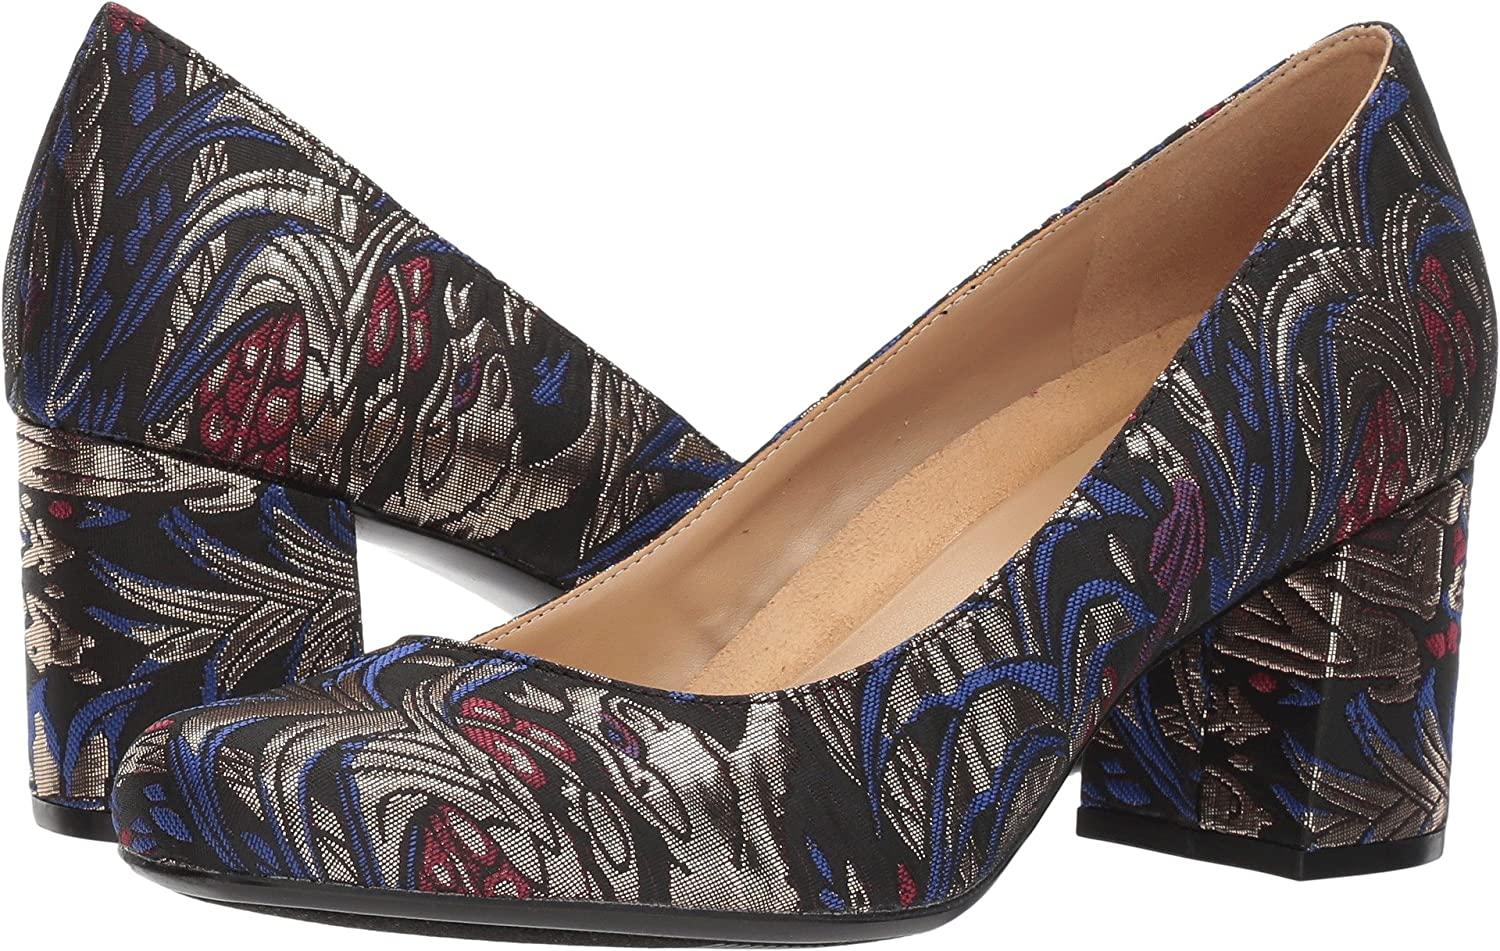 Naturalizer Women's Whitney Dress Pump Brocade B071NS4YNB 7 C/D US|Black Brocade Pump e6a345